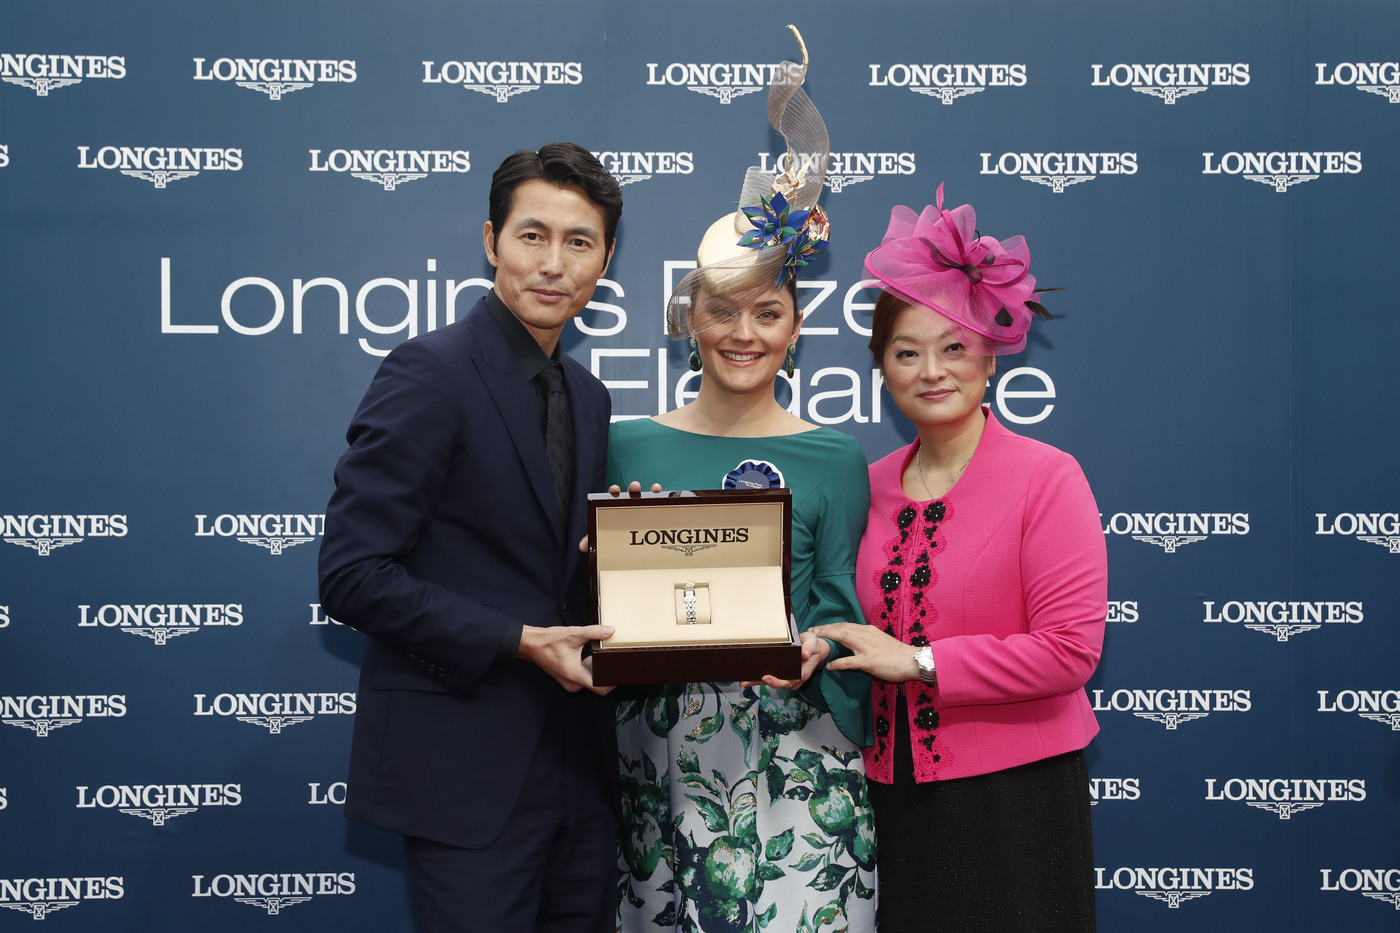 Longines Flat Racing Event: The Longines Hong Kong International Races:  four races, four chances to become a legend 9